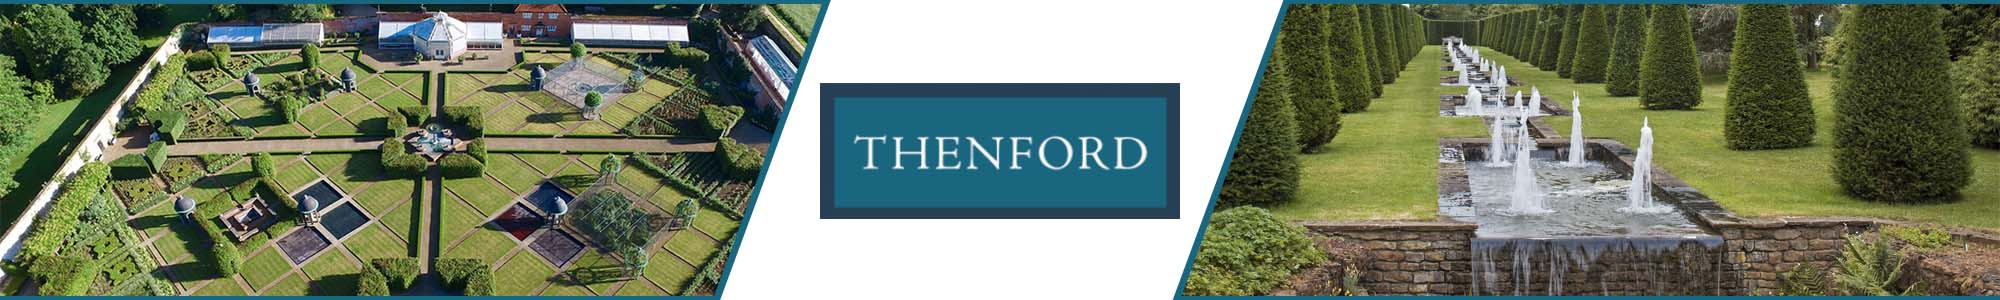 Horticulturist job with Thenford House | 334348